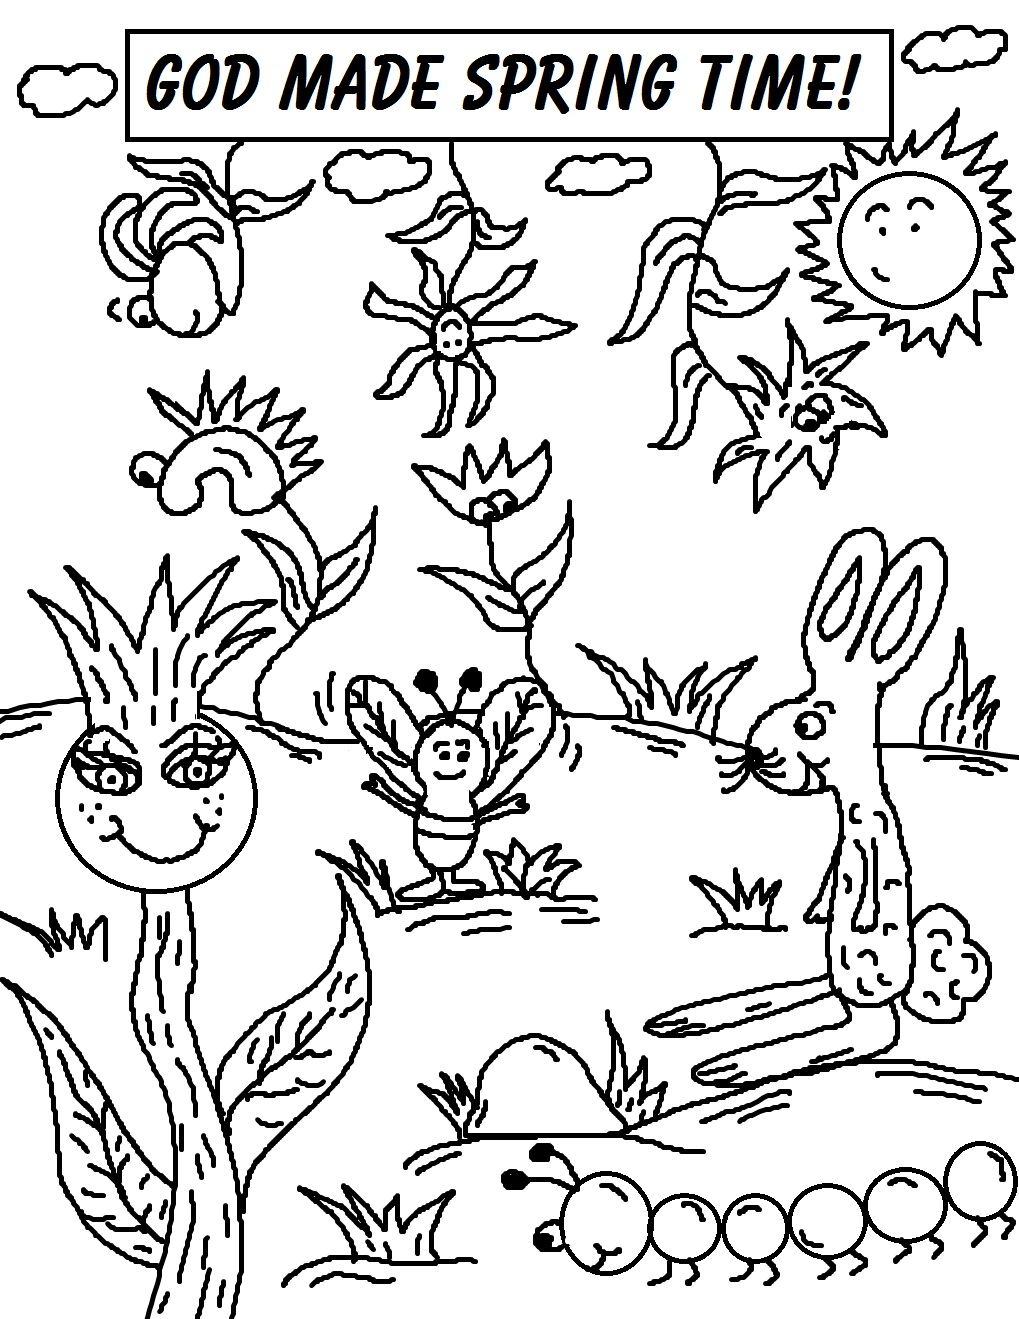 Free coloring pages spring - Spring Coloring Pages God Made Spring Time